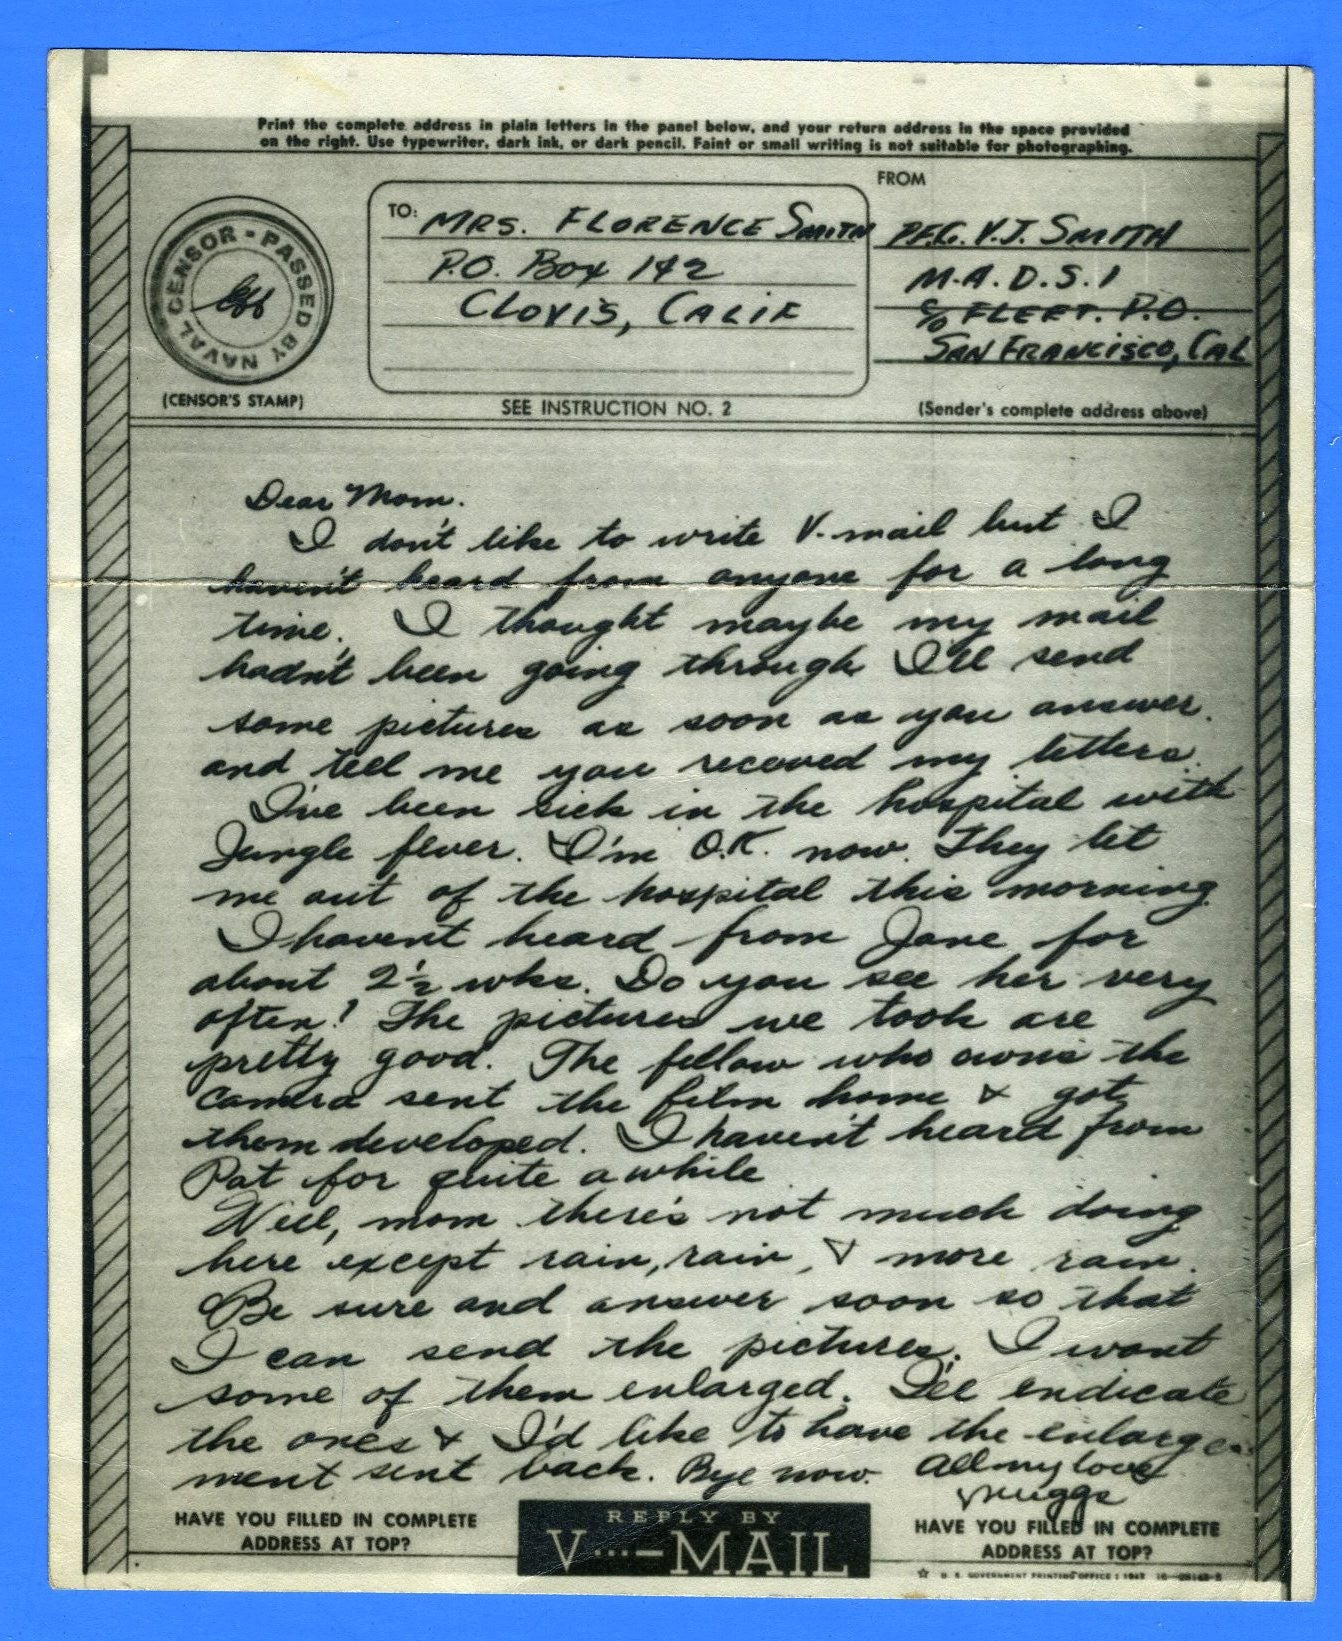 Marine's Censored V Mail Marine Aviation Detachment 1 (MADS) July 13, 1944